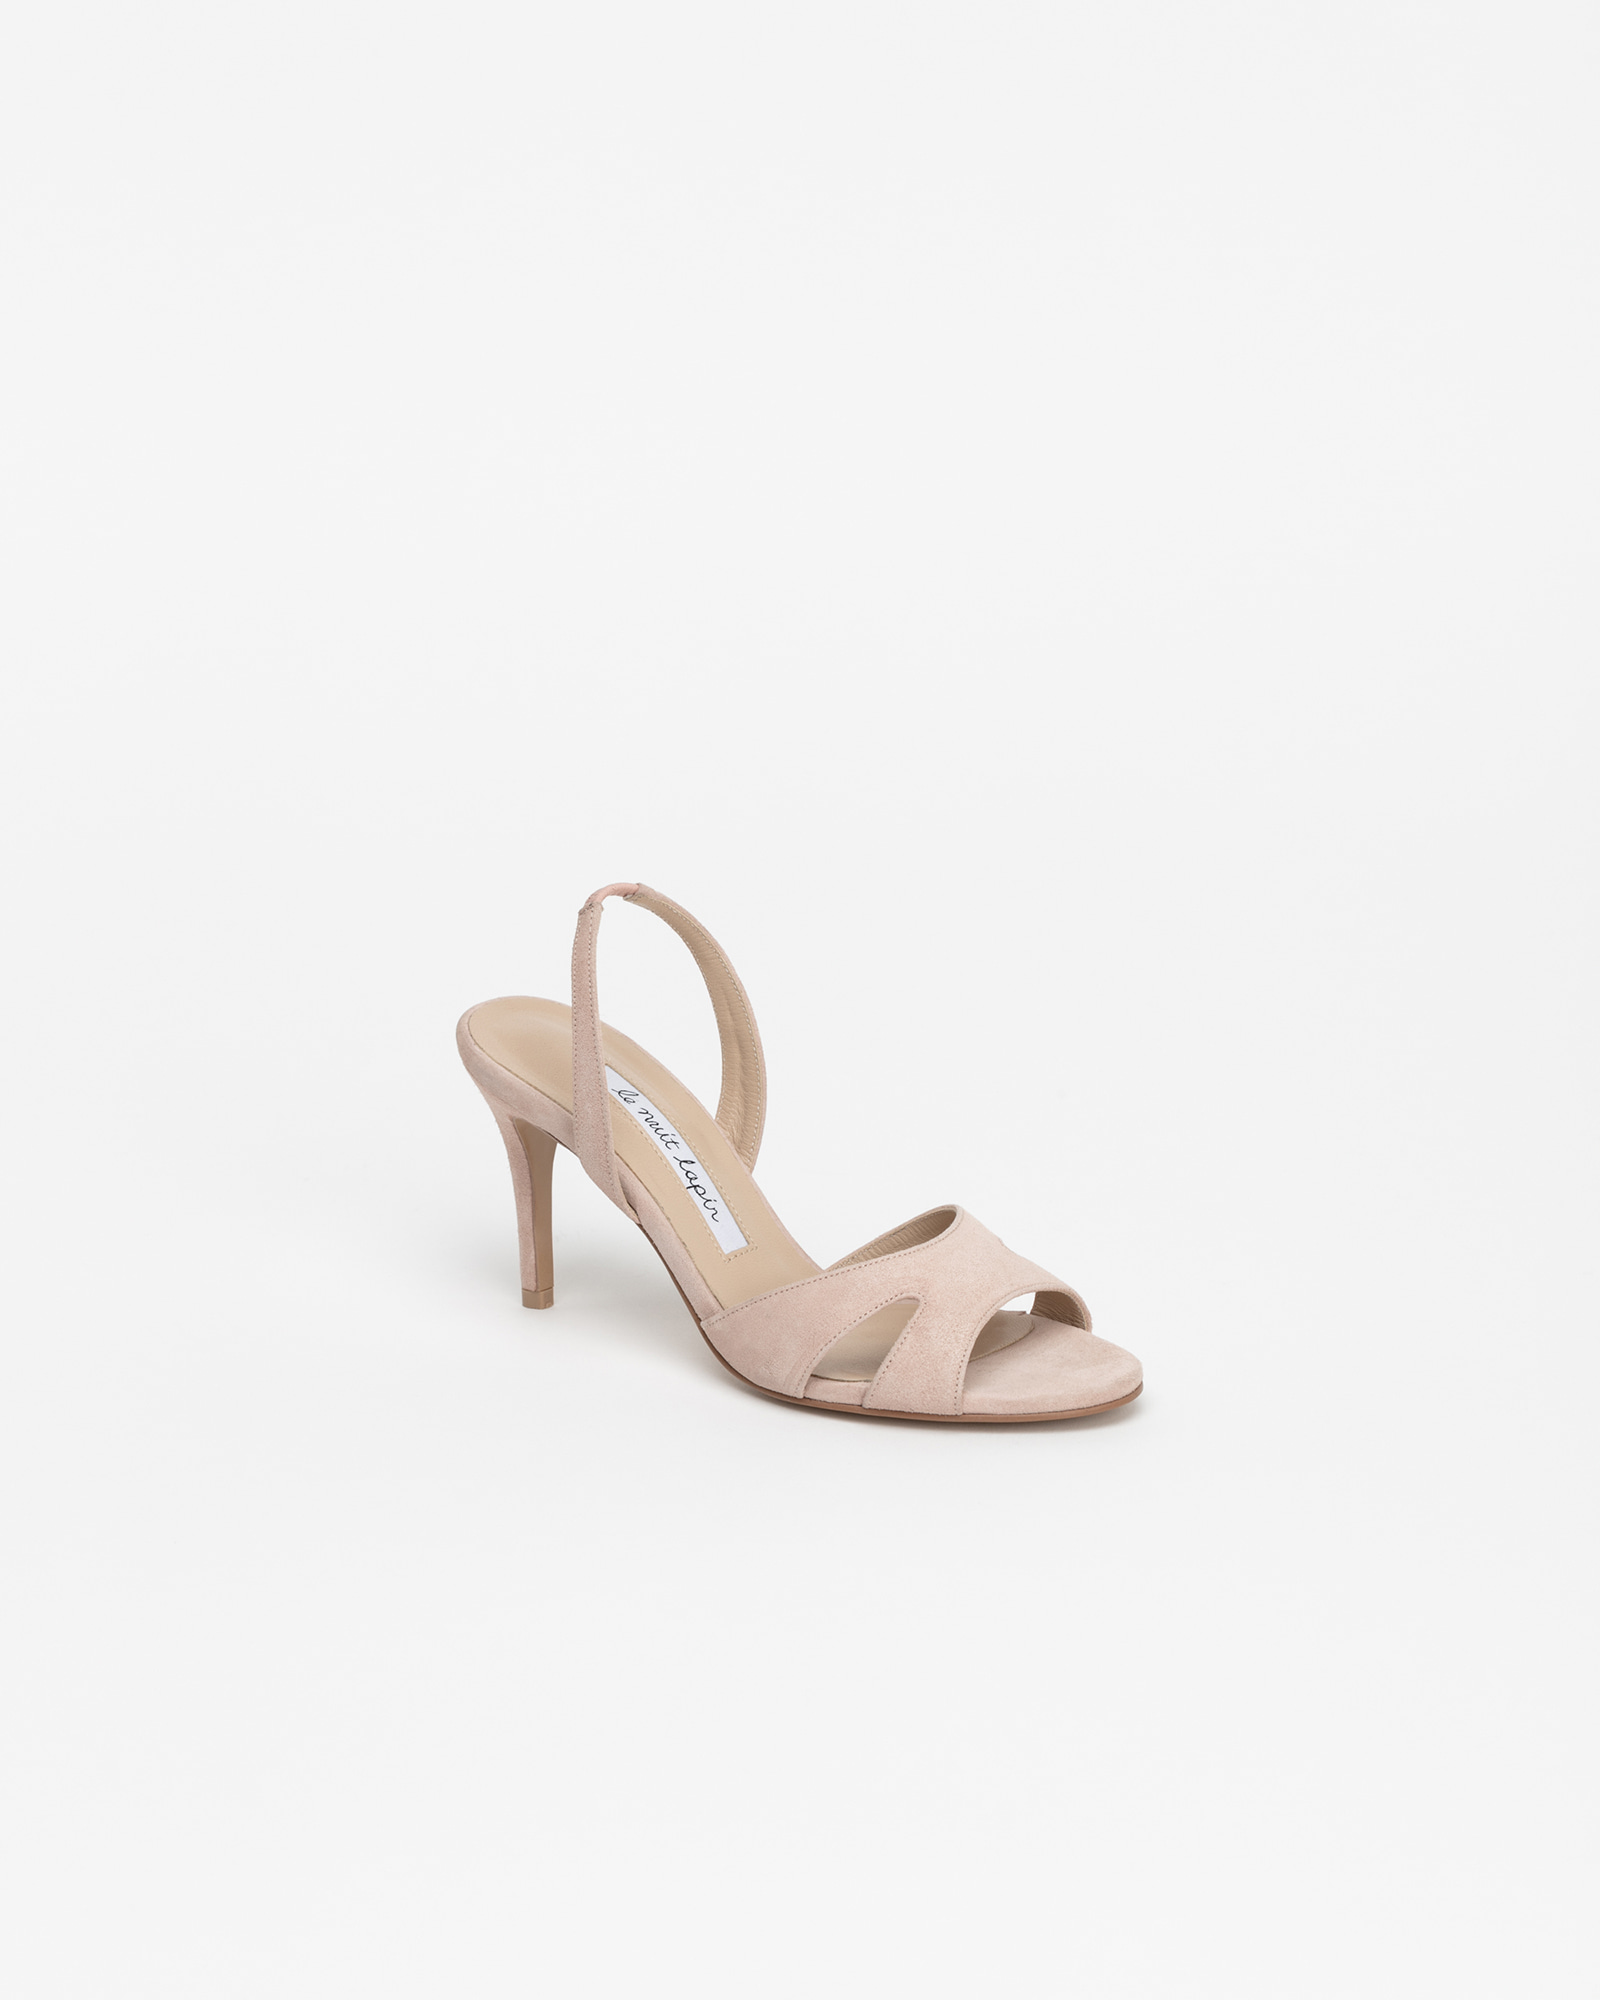 Viola Sandals in Rose Dust